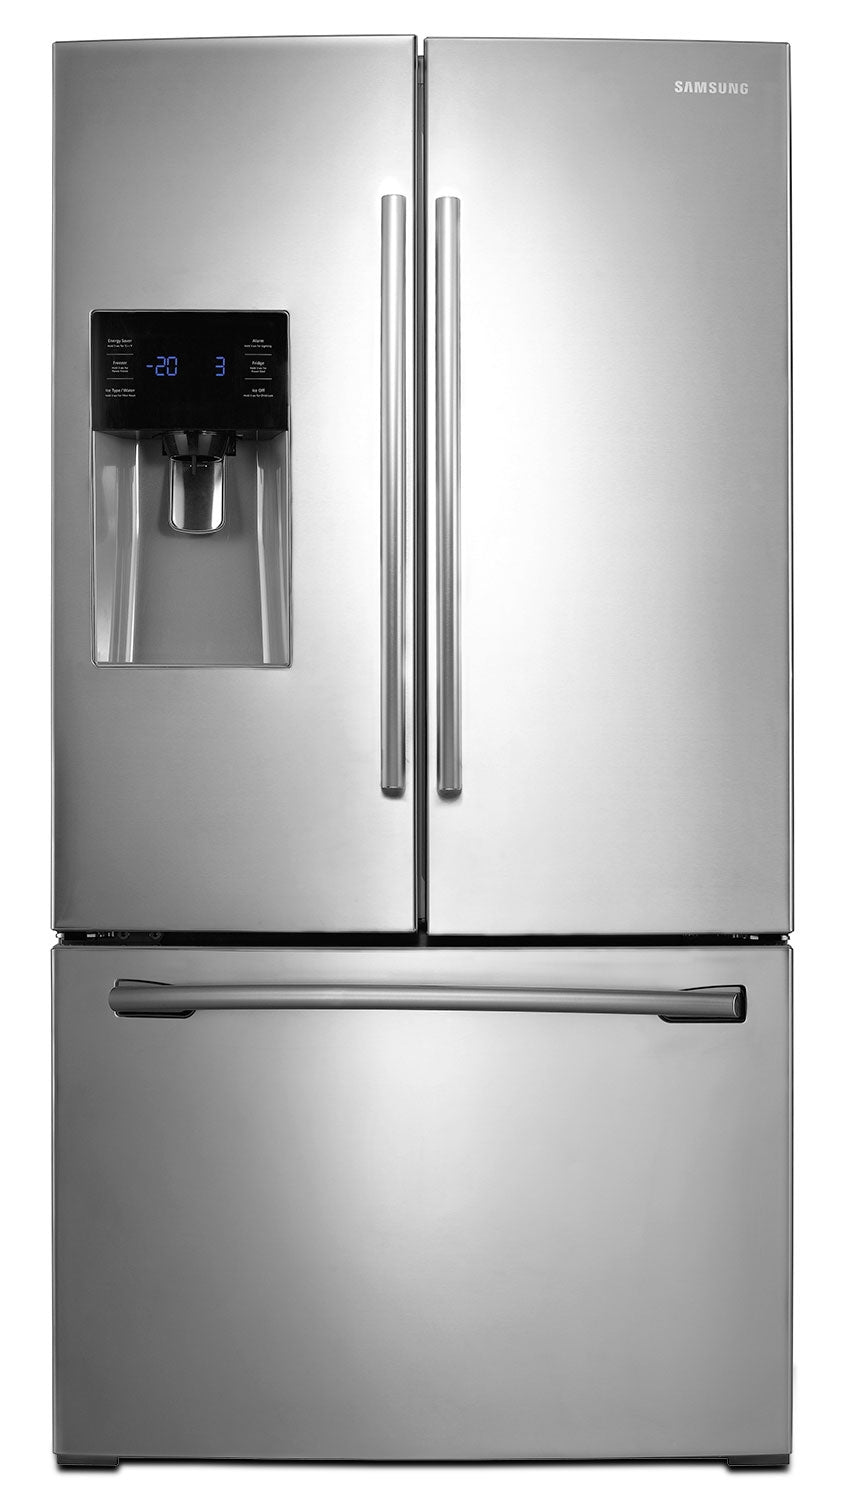 Samsung 26 Cu Ft French Door Refrigerator Rf263beaesraa The Brick